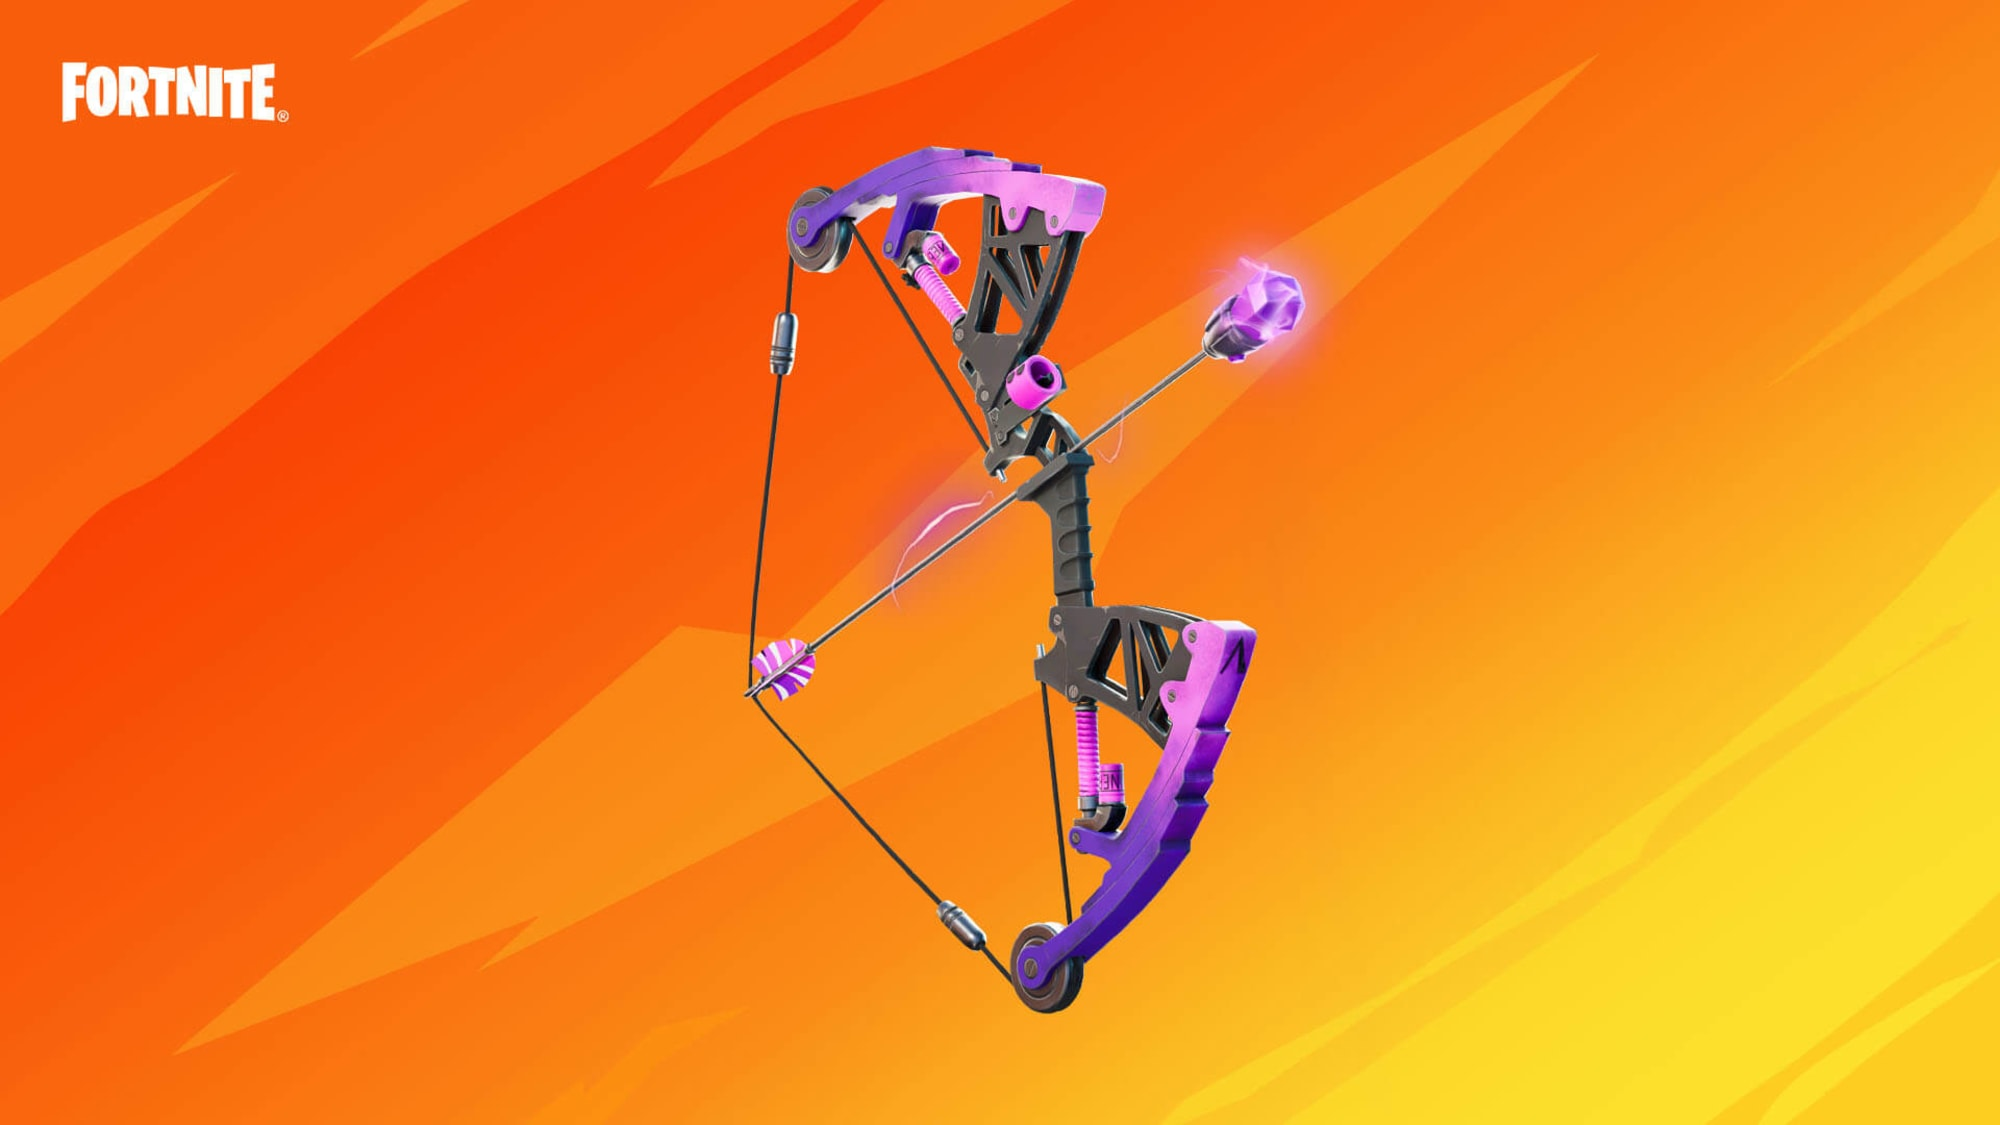 Fortnite: Bows go from great to amazing after buff